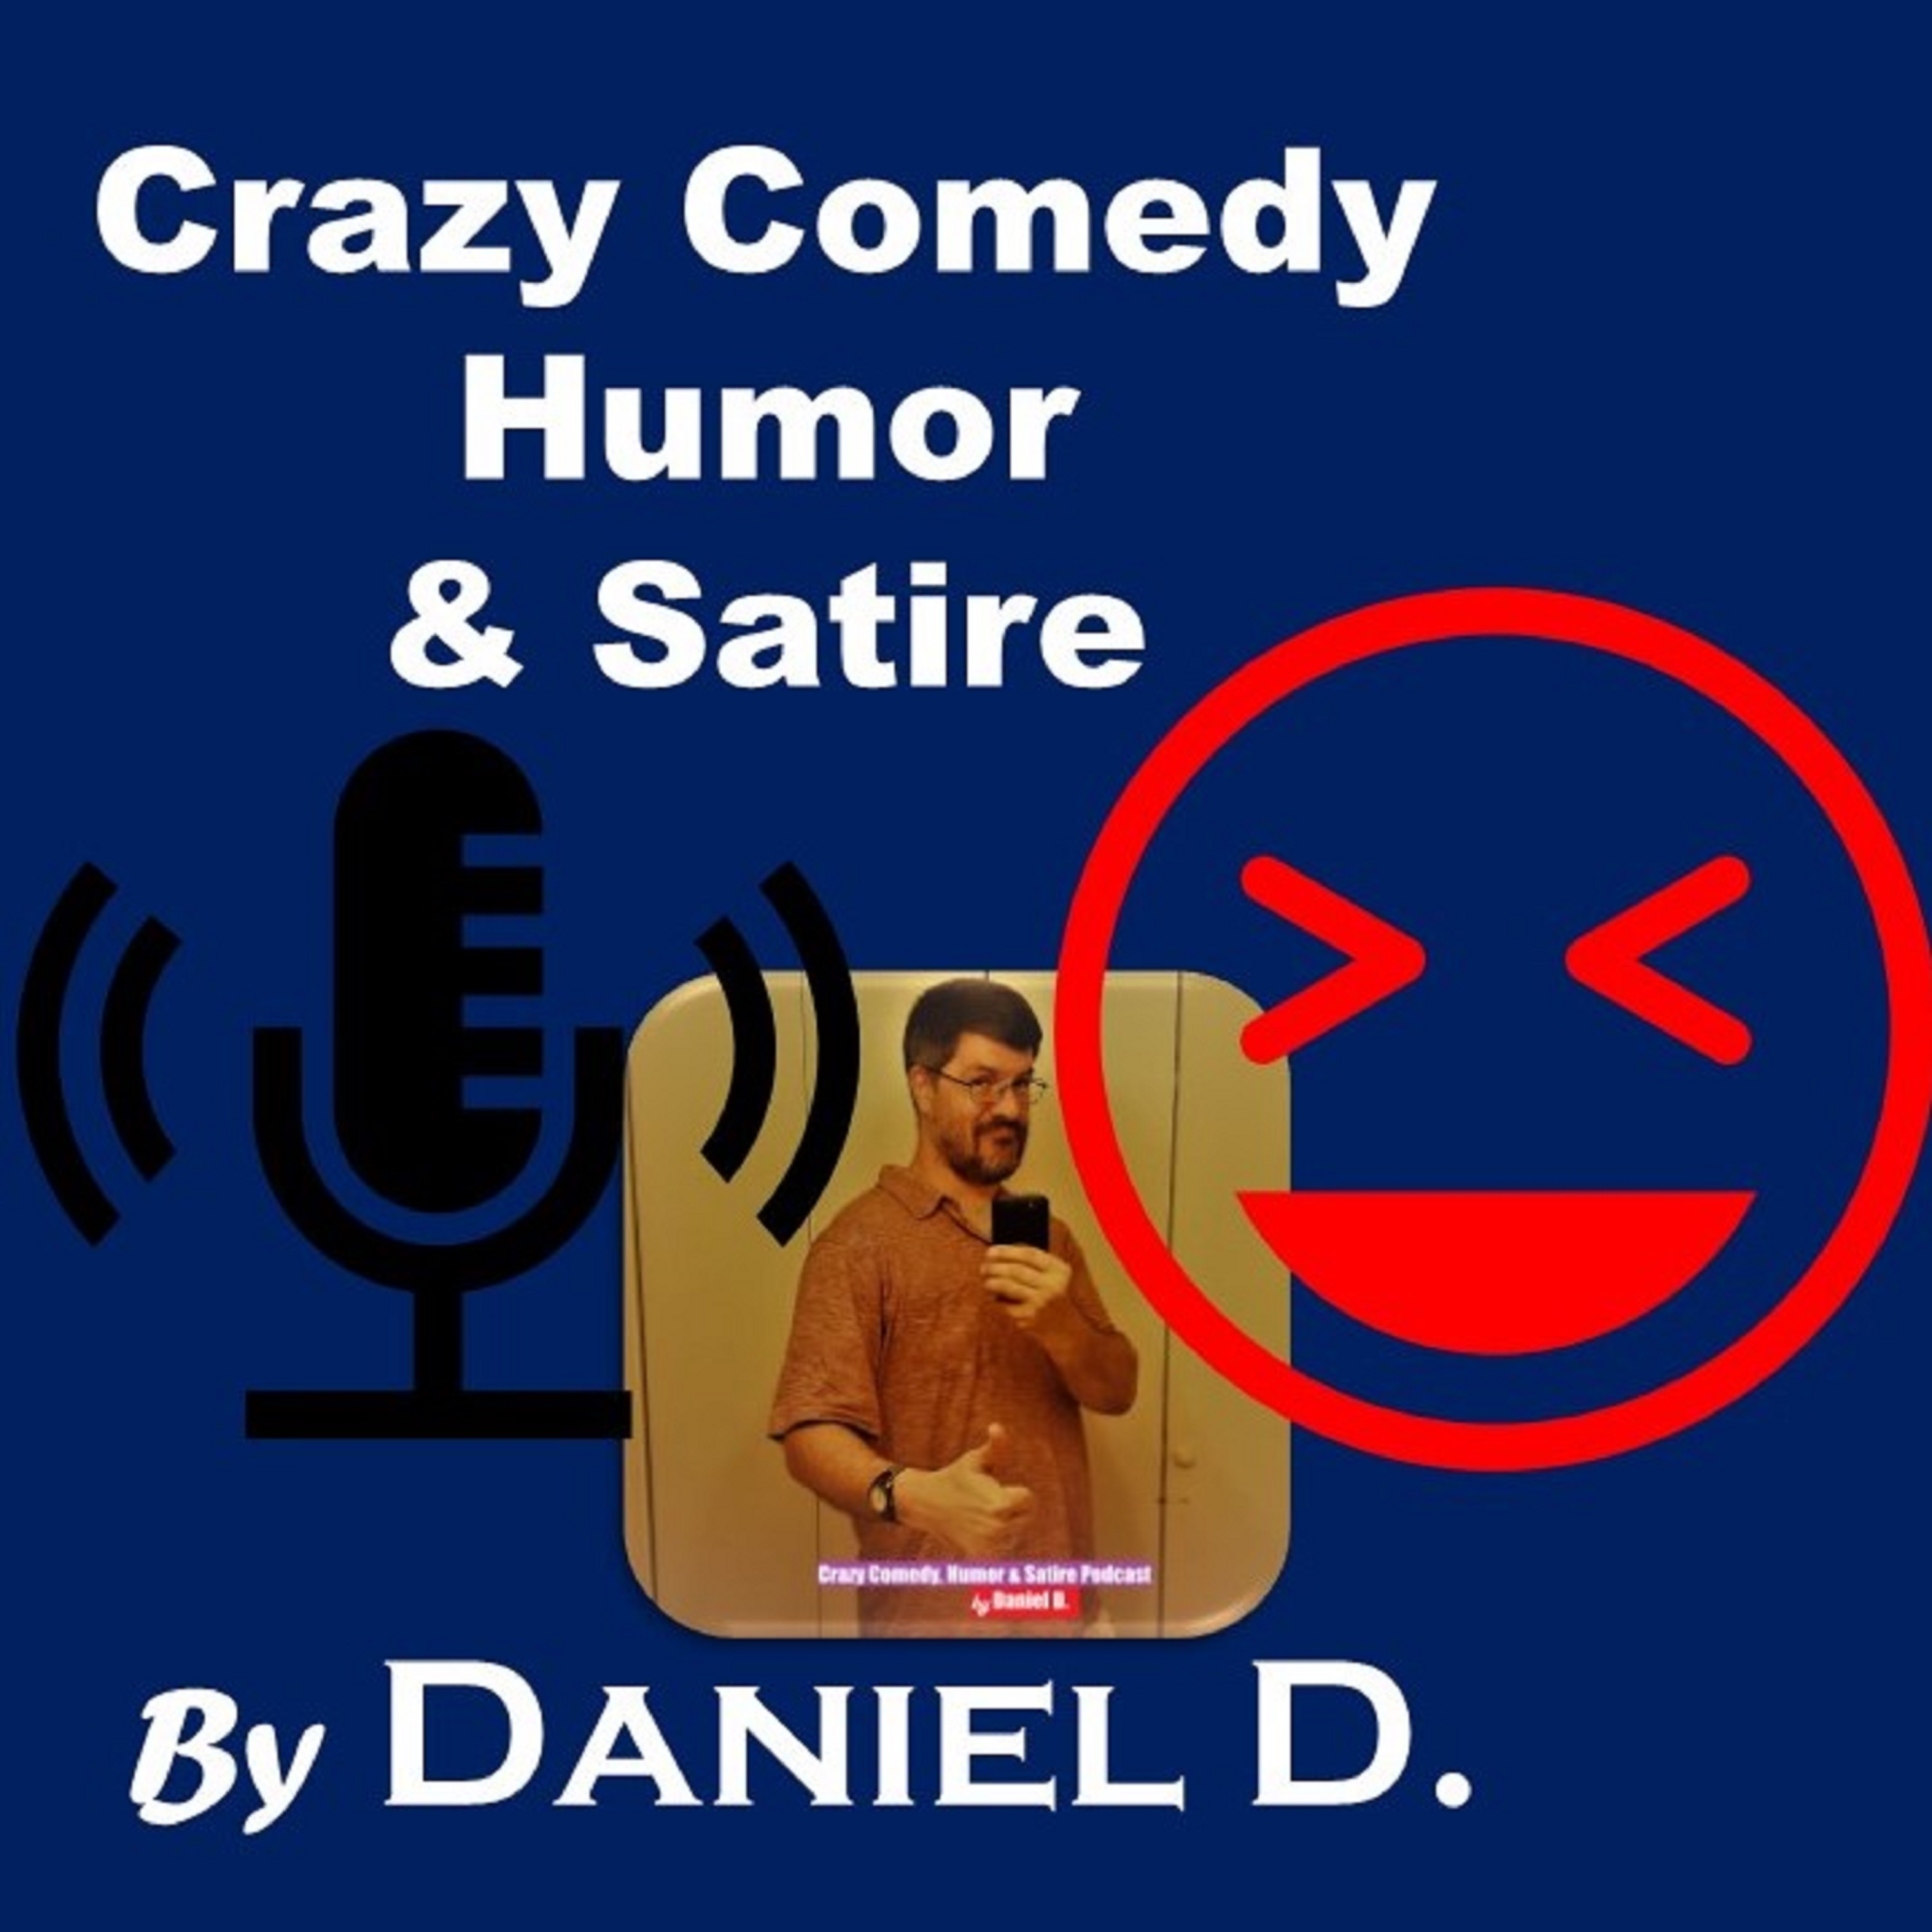 Artwork for Episode 27 of The Crazy Comedy, Humor and Satire Podcast